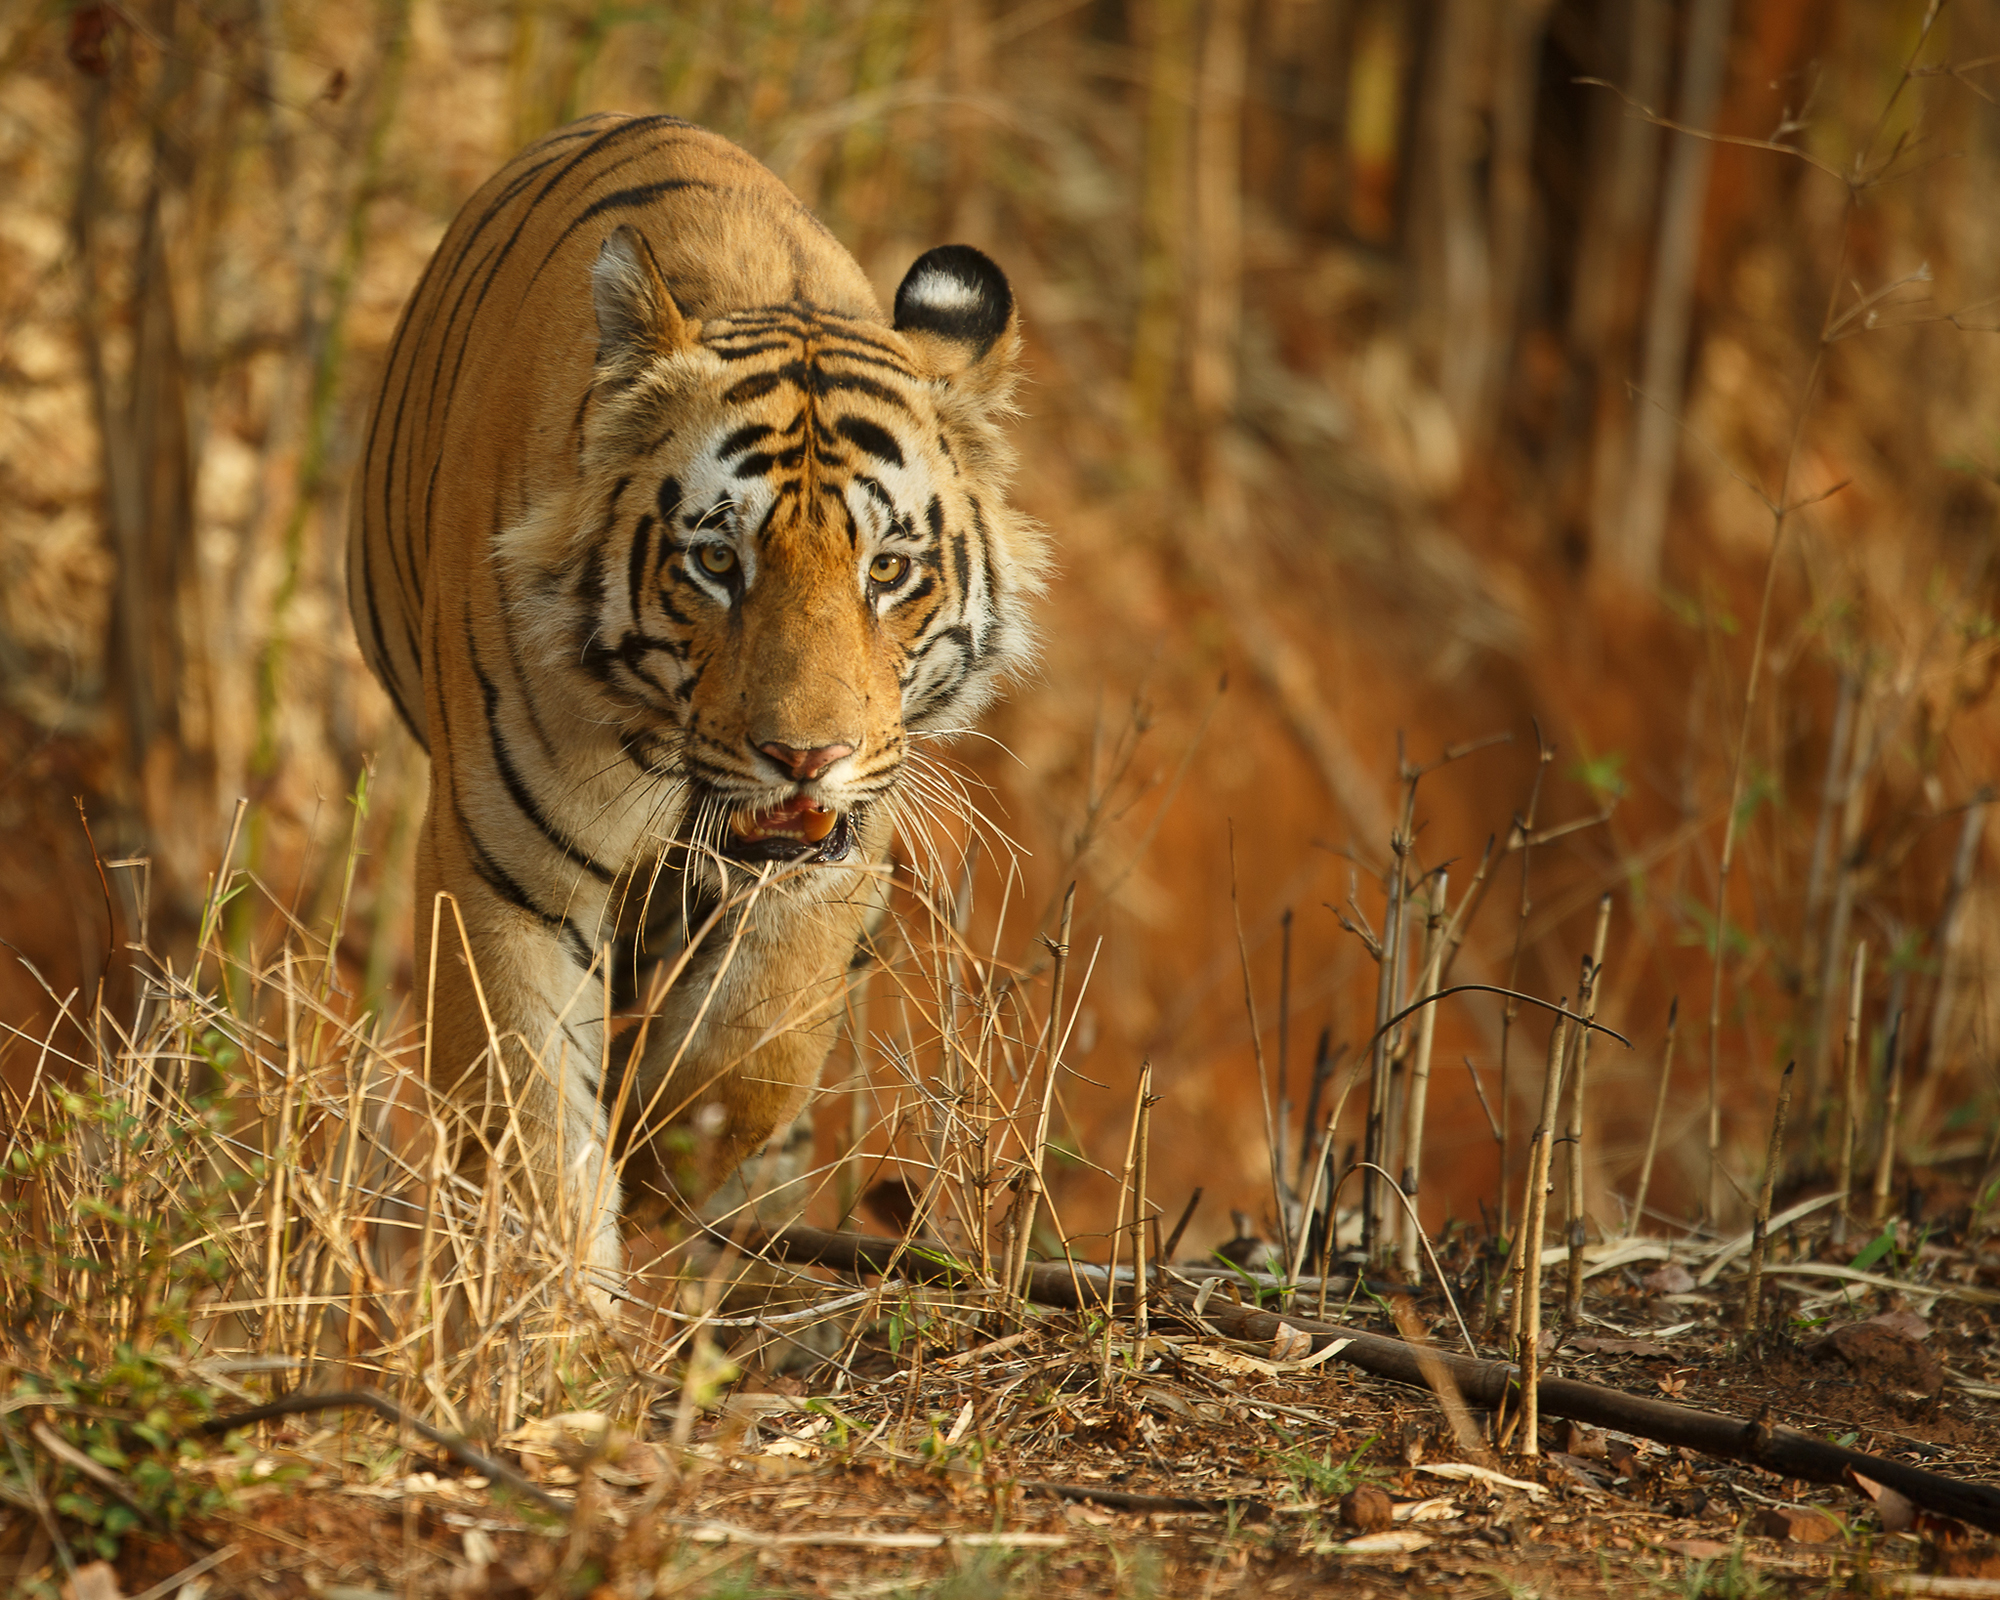 Tiger numbers increase but populations are still fragile